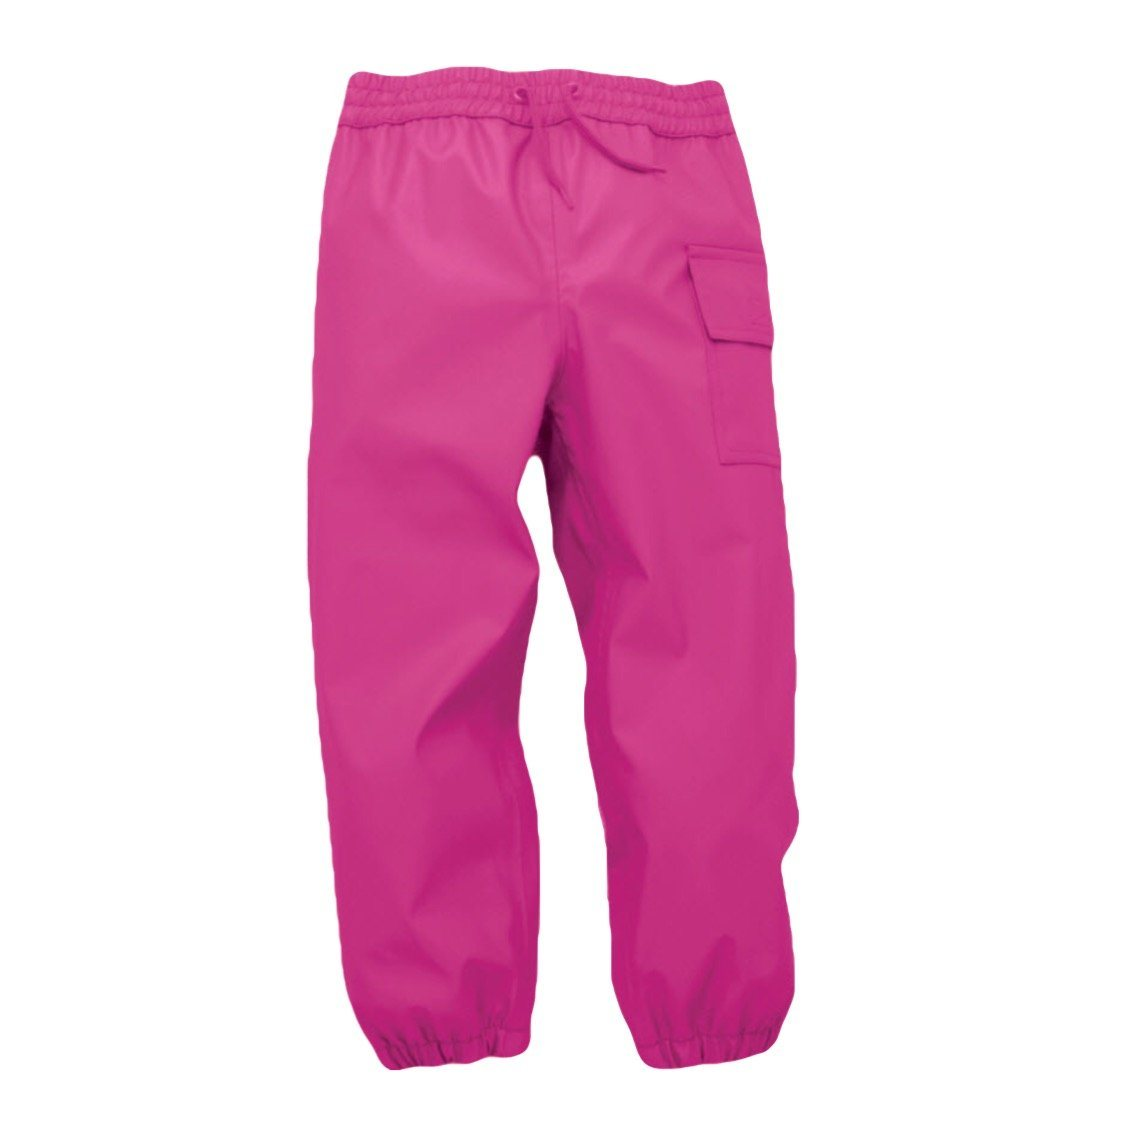 Hatley Classic Fuscia Splash Pants Splash Pants Hatley